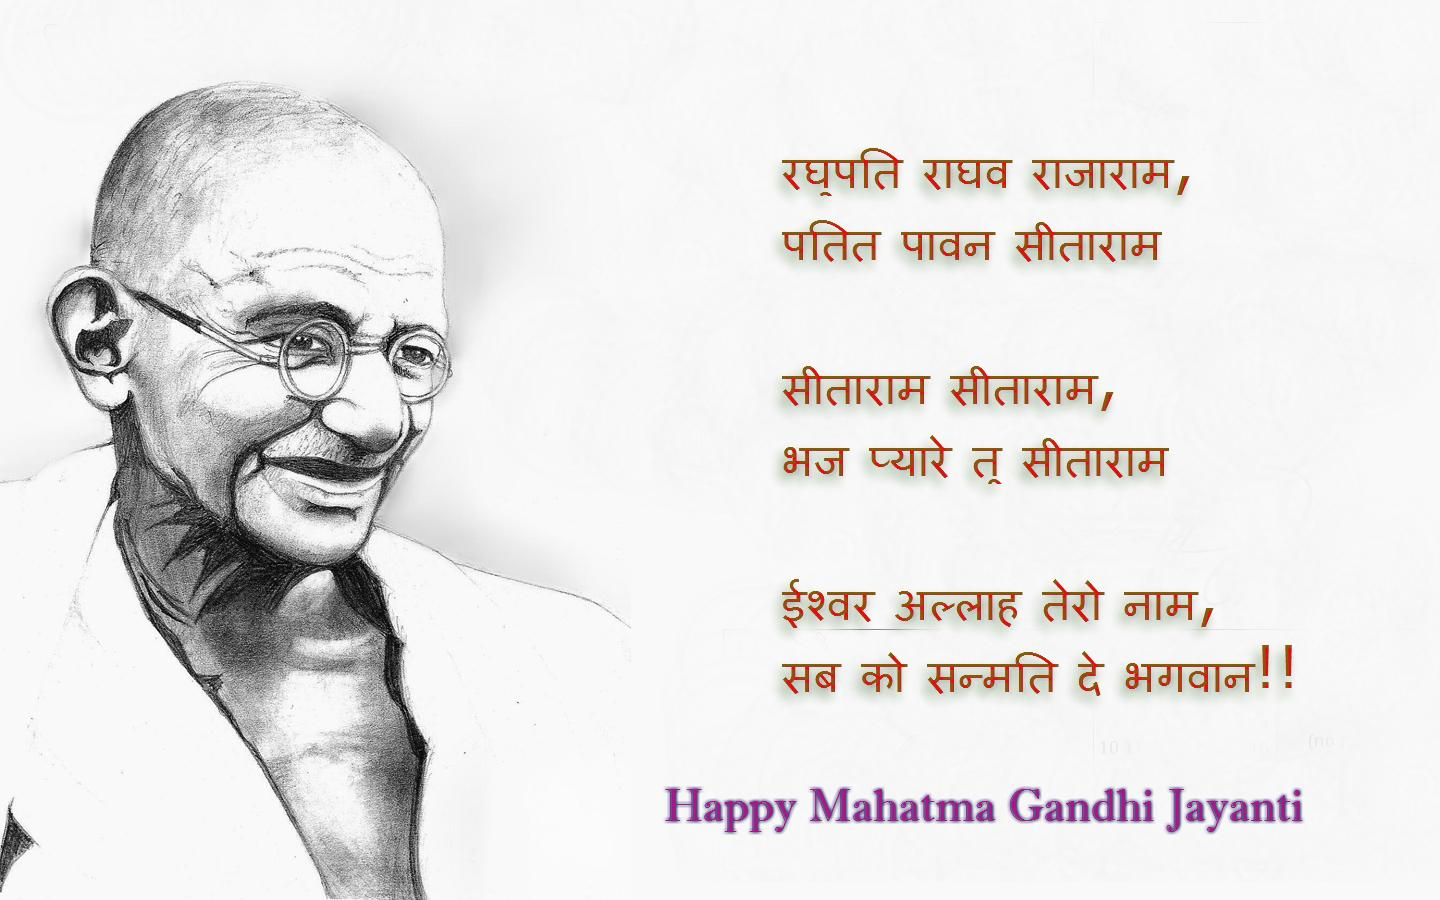 Computer Science Essay My Favourite Leader Mahatma Gandhi Essay In Marathi Essay Collection Mahatma  Gandhi Birthday Quotes Pictures Love Essays On English Literature also Best English Essay My Favourite Leader Mahatma Gandhi Essay Words Essay On My Favorite  Examples Of Essay Proposals